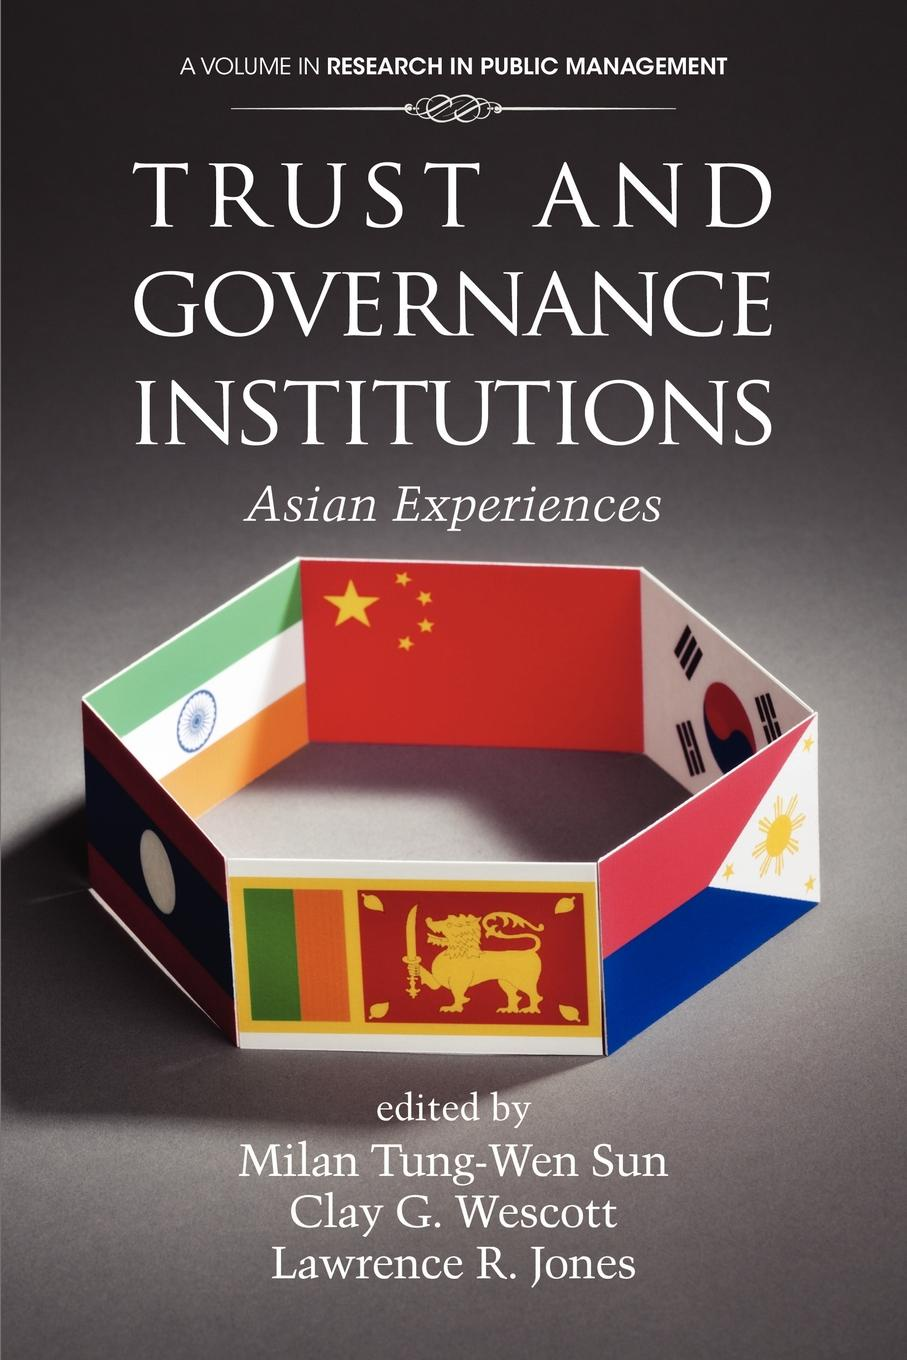 Trust and Governance Institutions. Asian Experiences